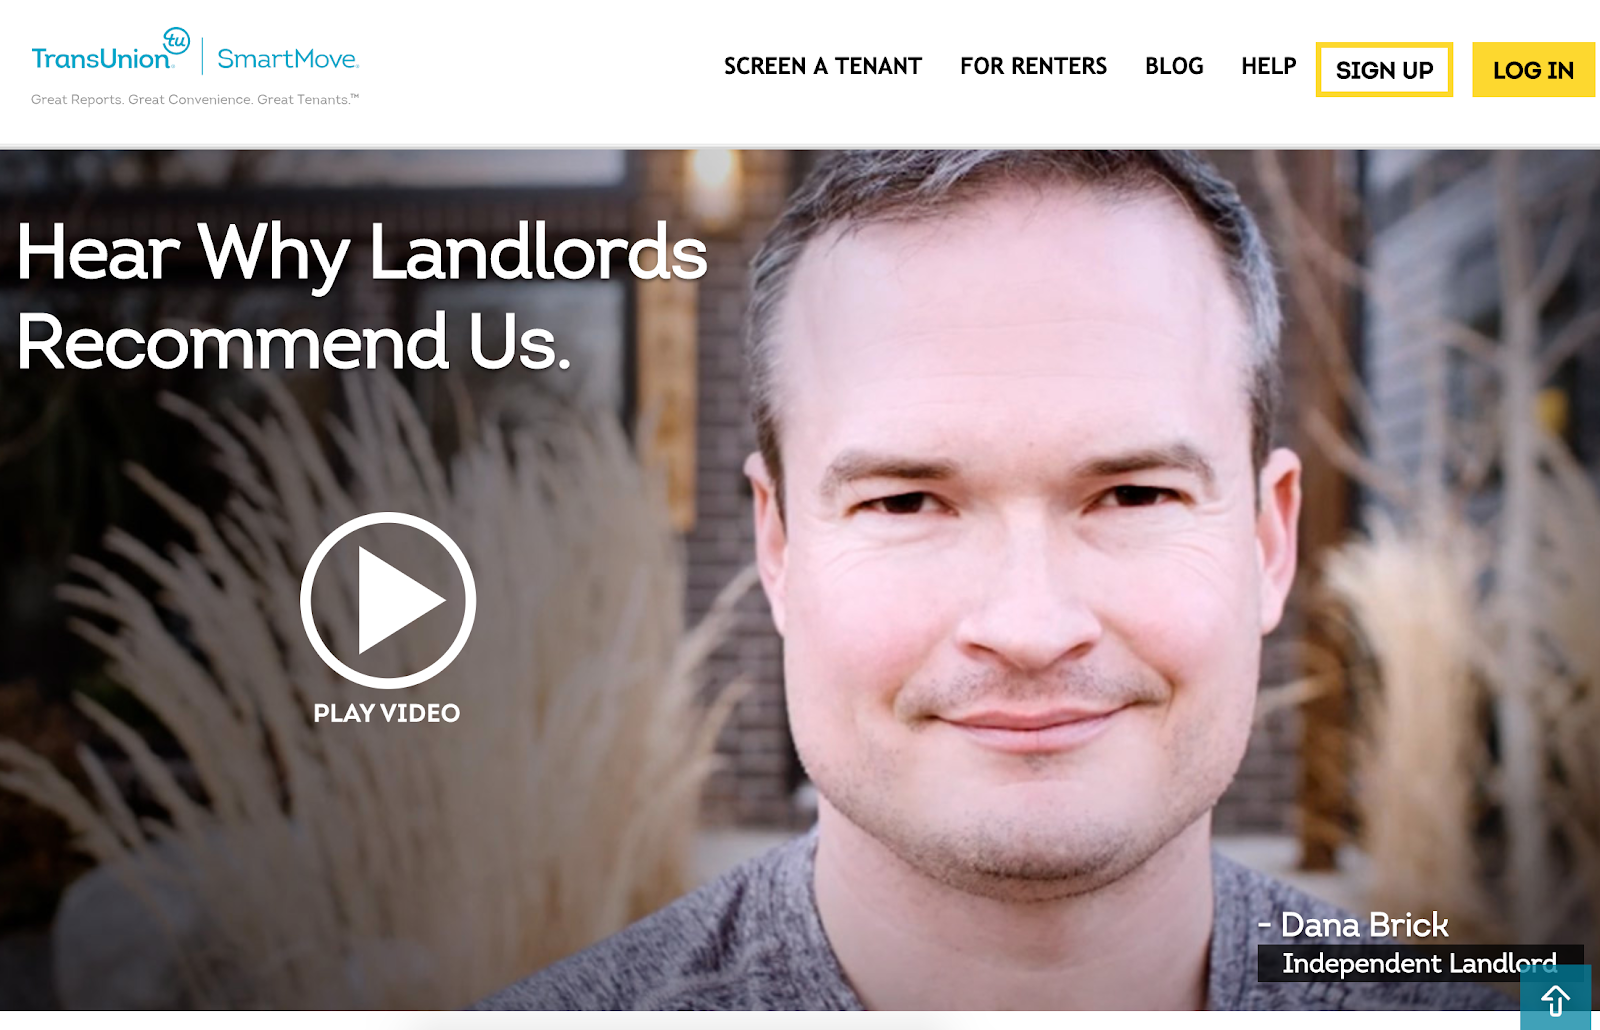 SmartMove, a tenant background check company, features a video testimonial from a satisfied landlord on the homepage of their website. Source: SmartMove